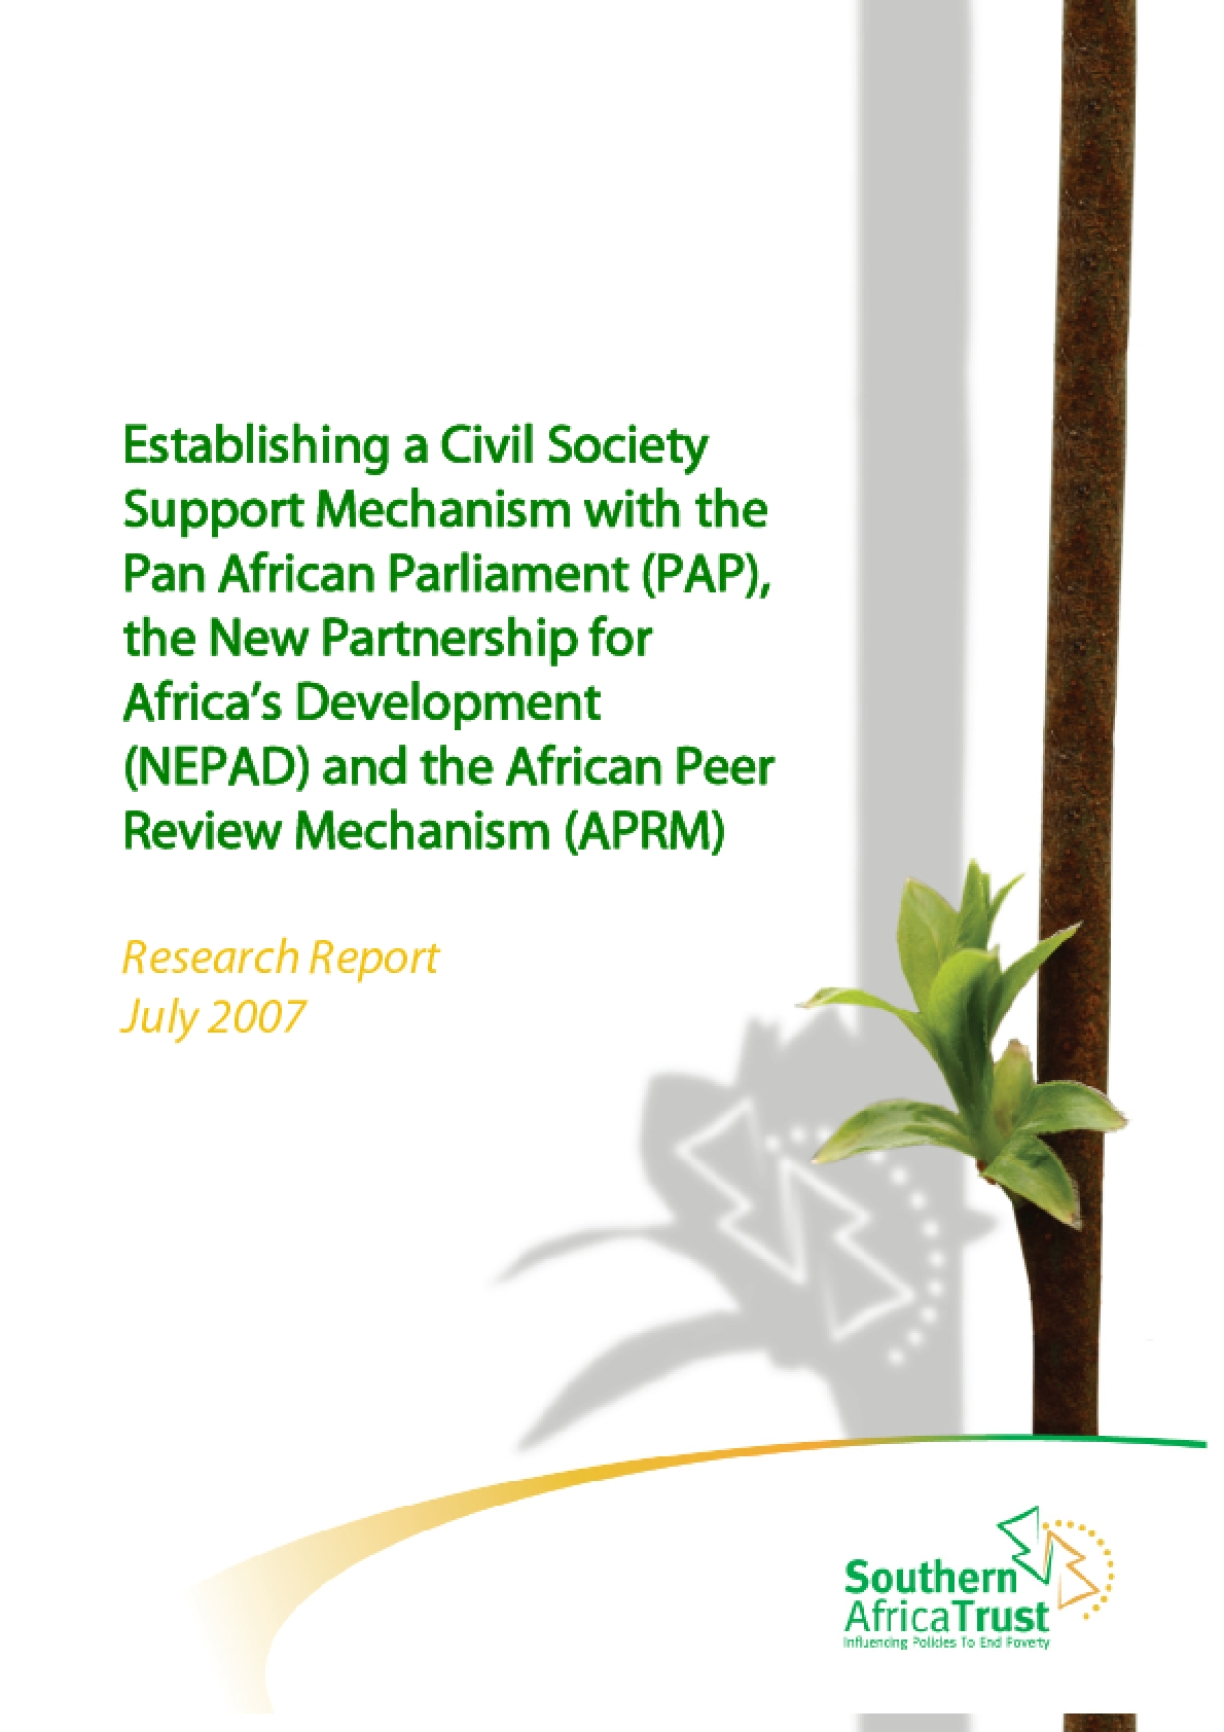 Establishing a Civil Society Support Mechanism with the Pan African Parliament (PAP), the New Partnership for Africa's Development (NEPAD) and the African Peer Review Mechanism (APRM)